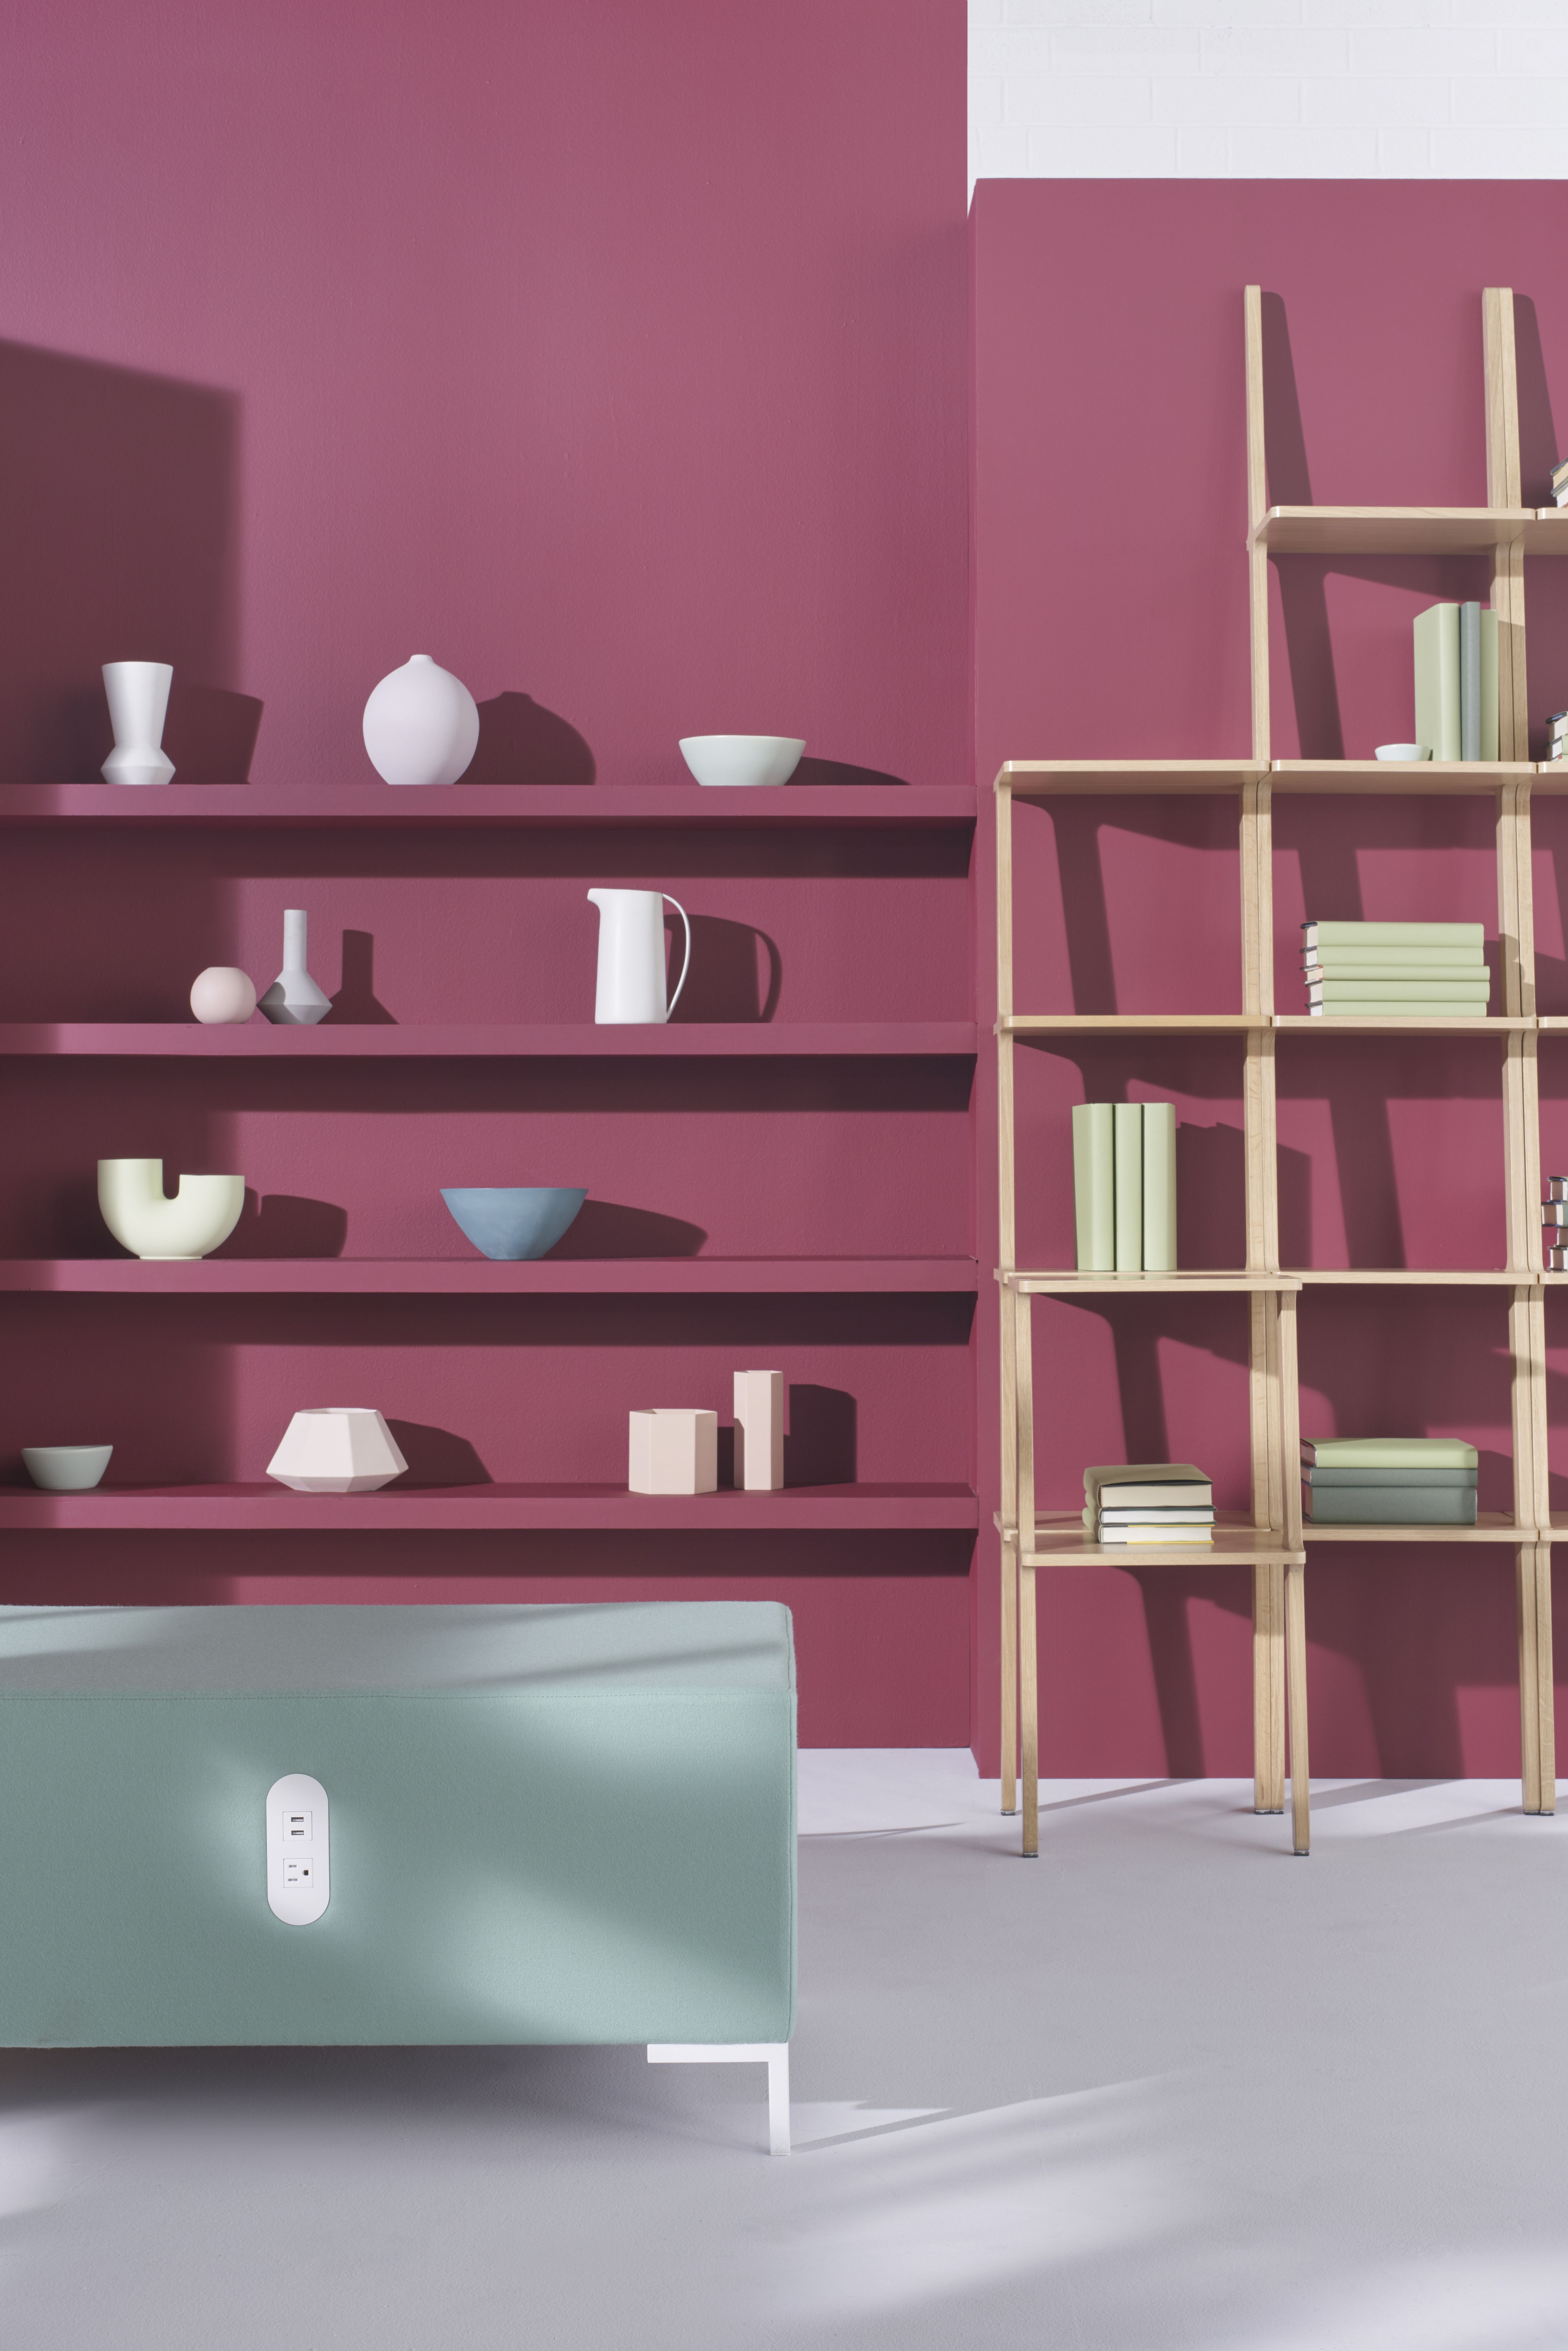 Libri Shelves Were Sculpted With A Ladder Like Design And Act As